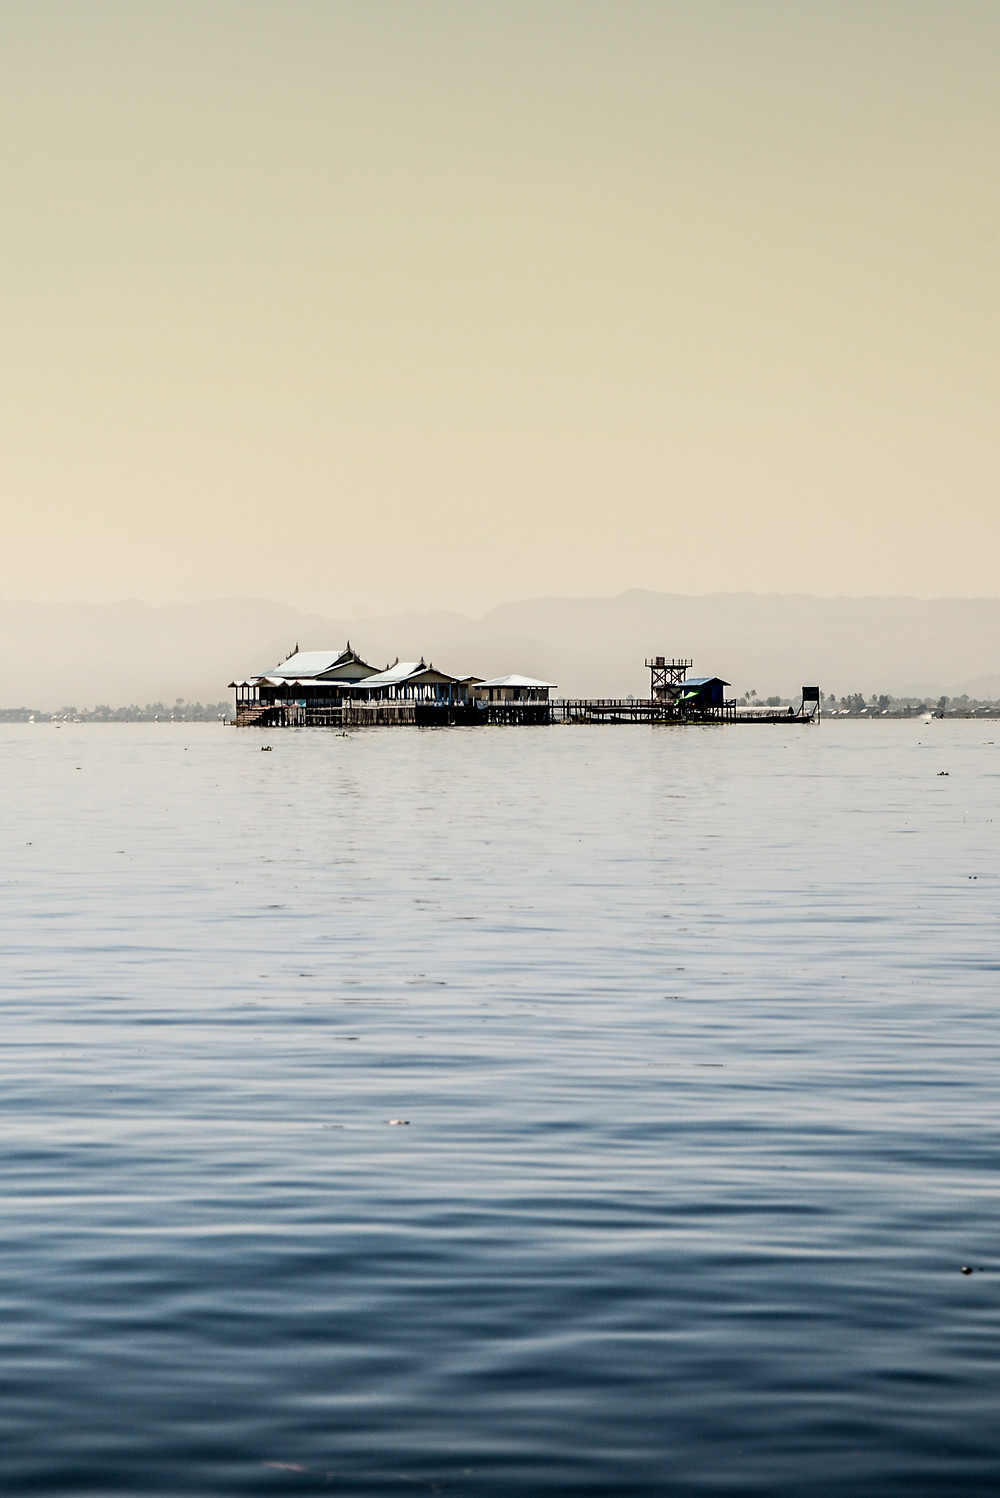 buildings on stilts on the water at Inle Lake Myanmar